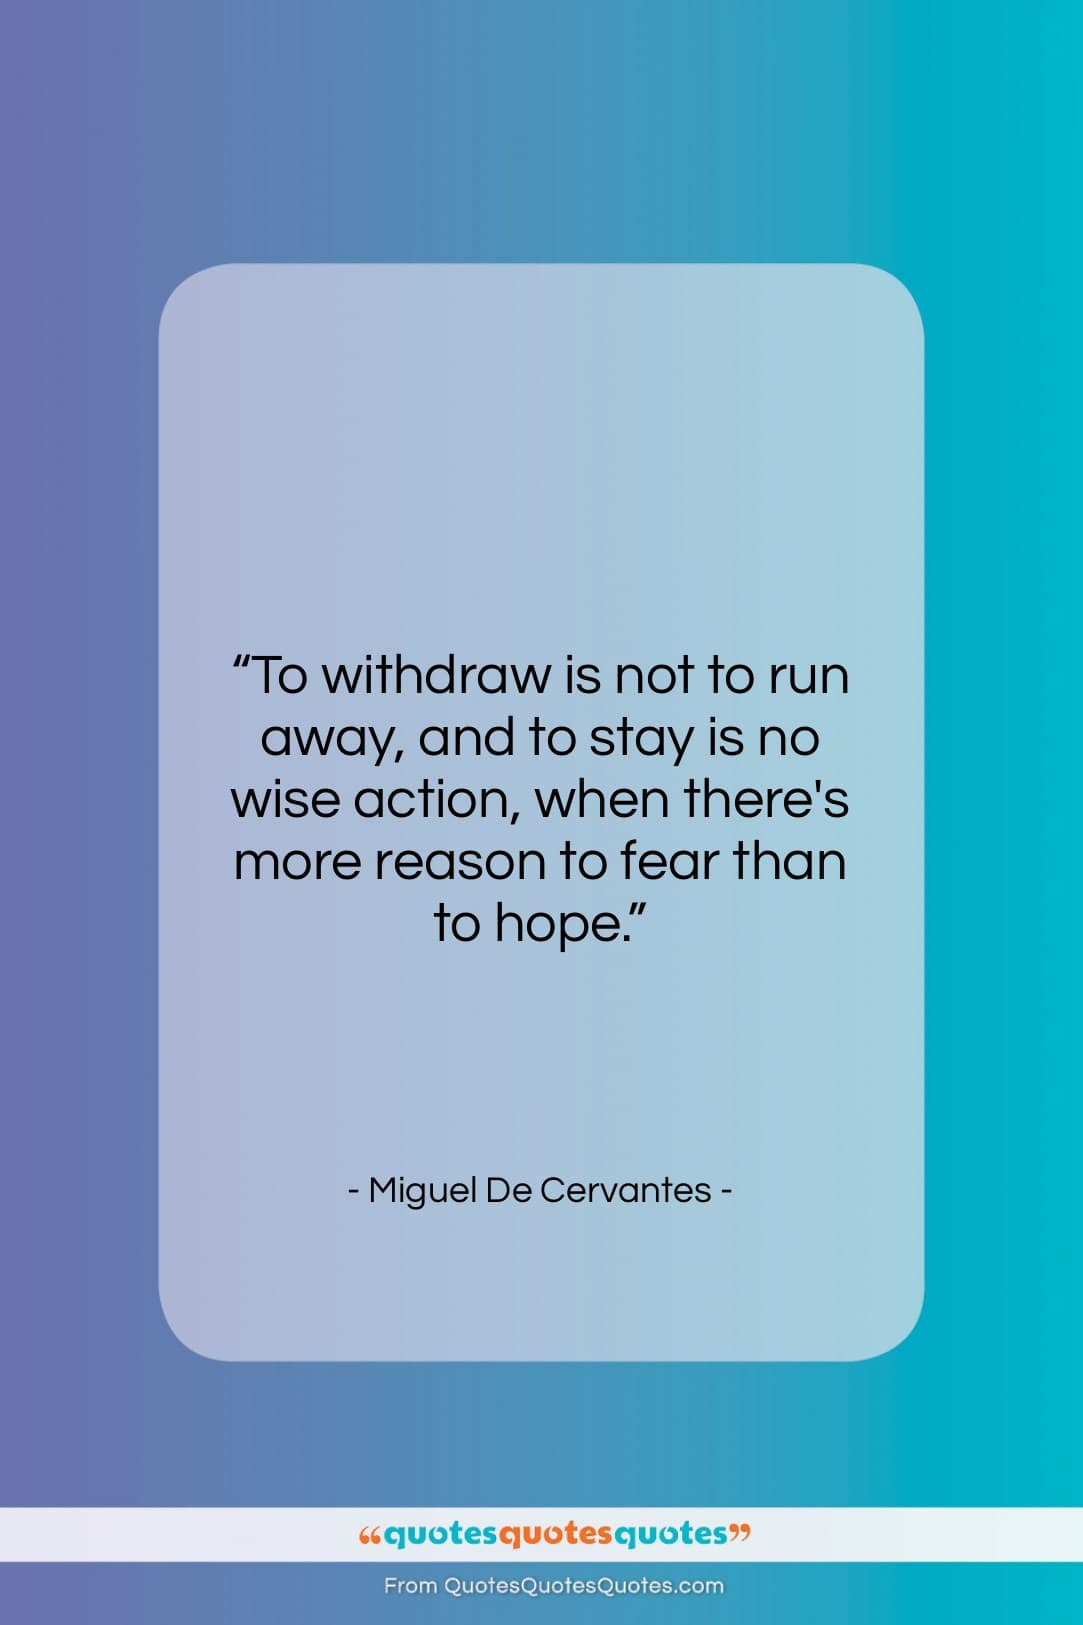 """Miguel De Cervantes quote: """"To withdraw is not to run away,…""""- at QuotesQuotesQuotes.com"""